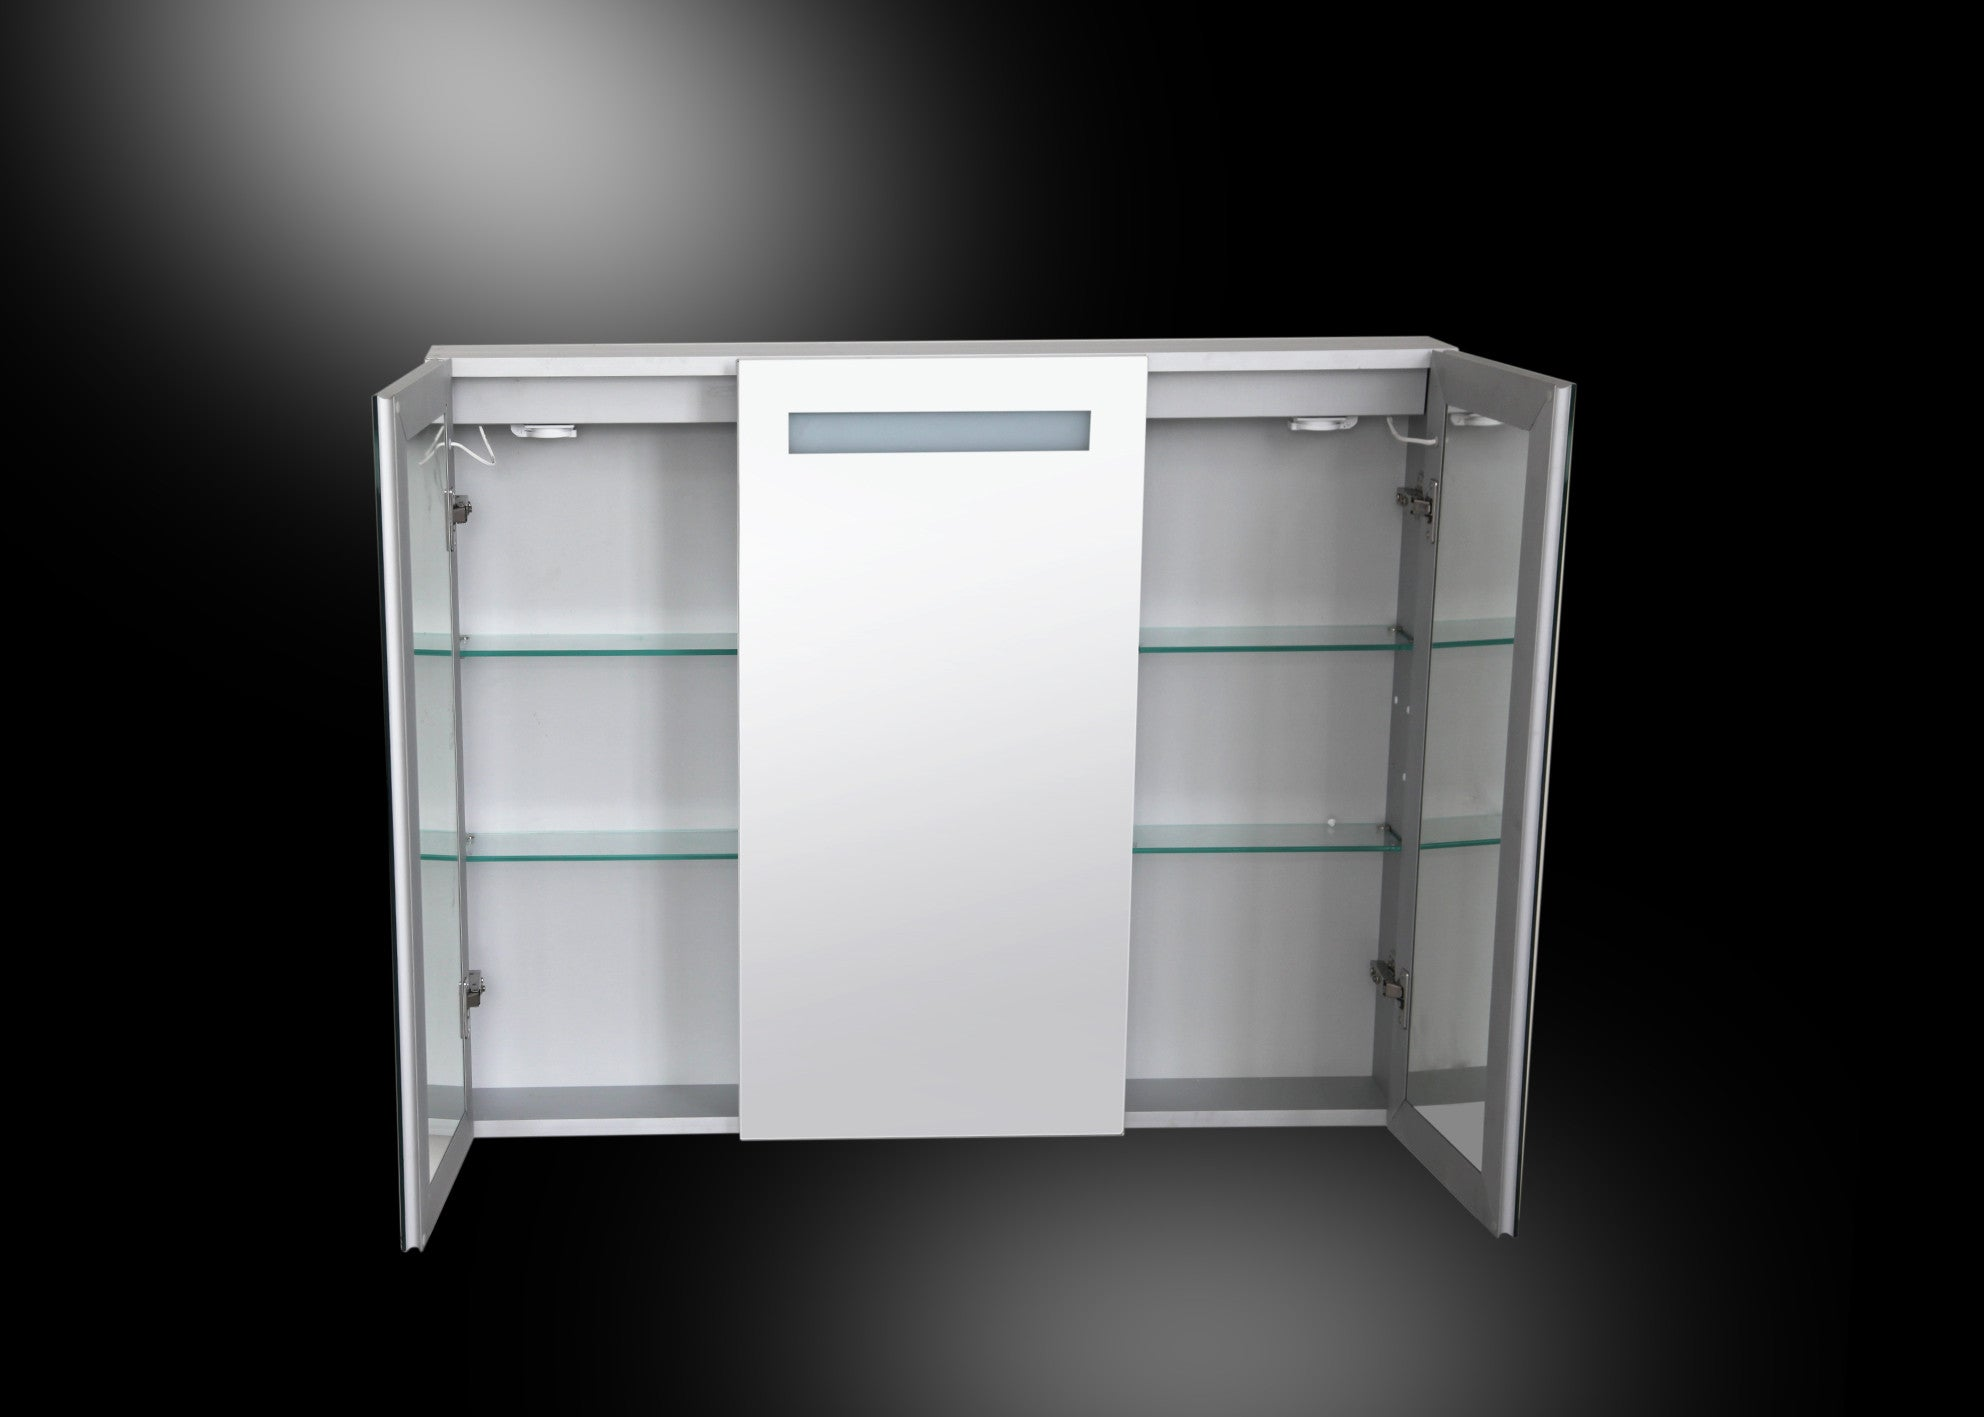 39 aluma 39 led mirror cabinet 120 x 80 cm for Mirror 120 x 80